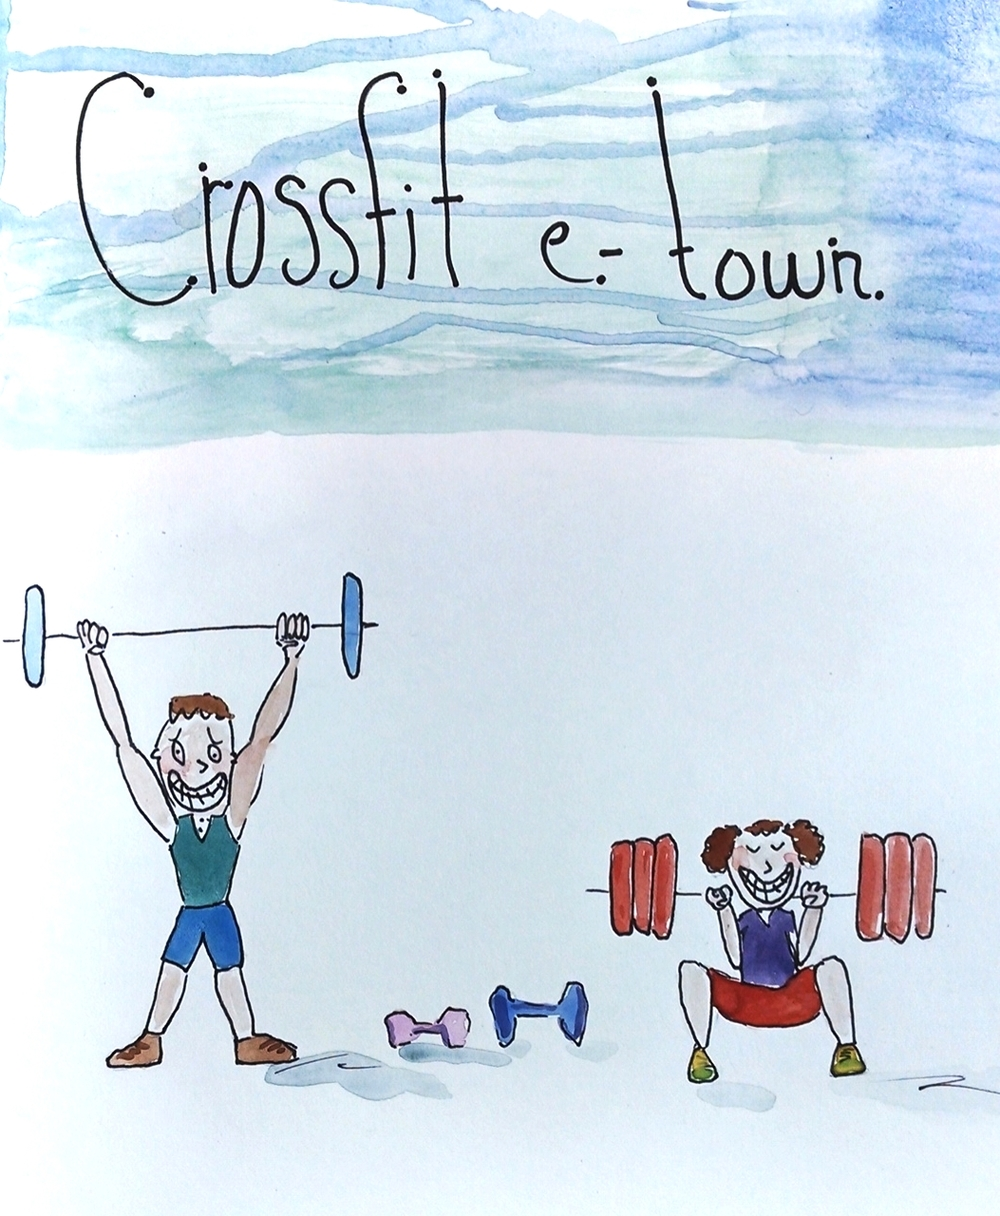 Crossfit e-town